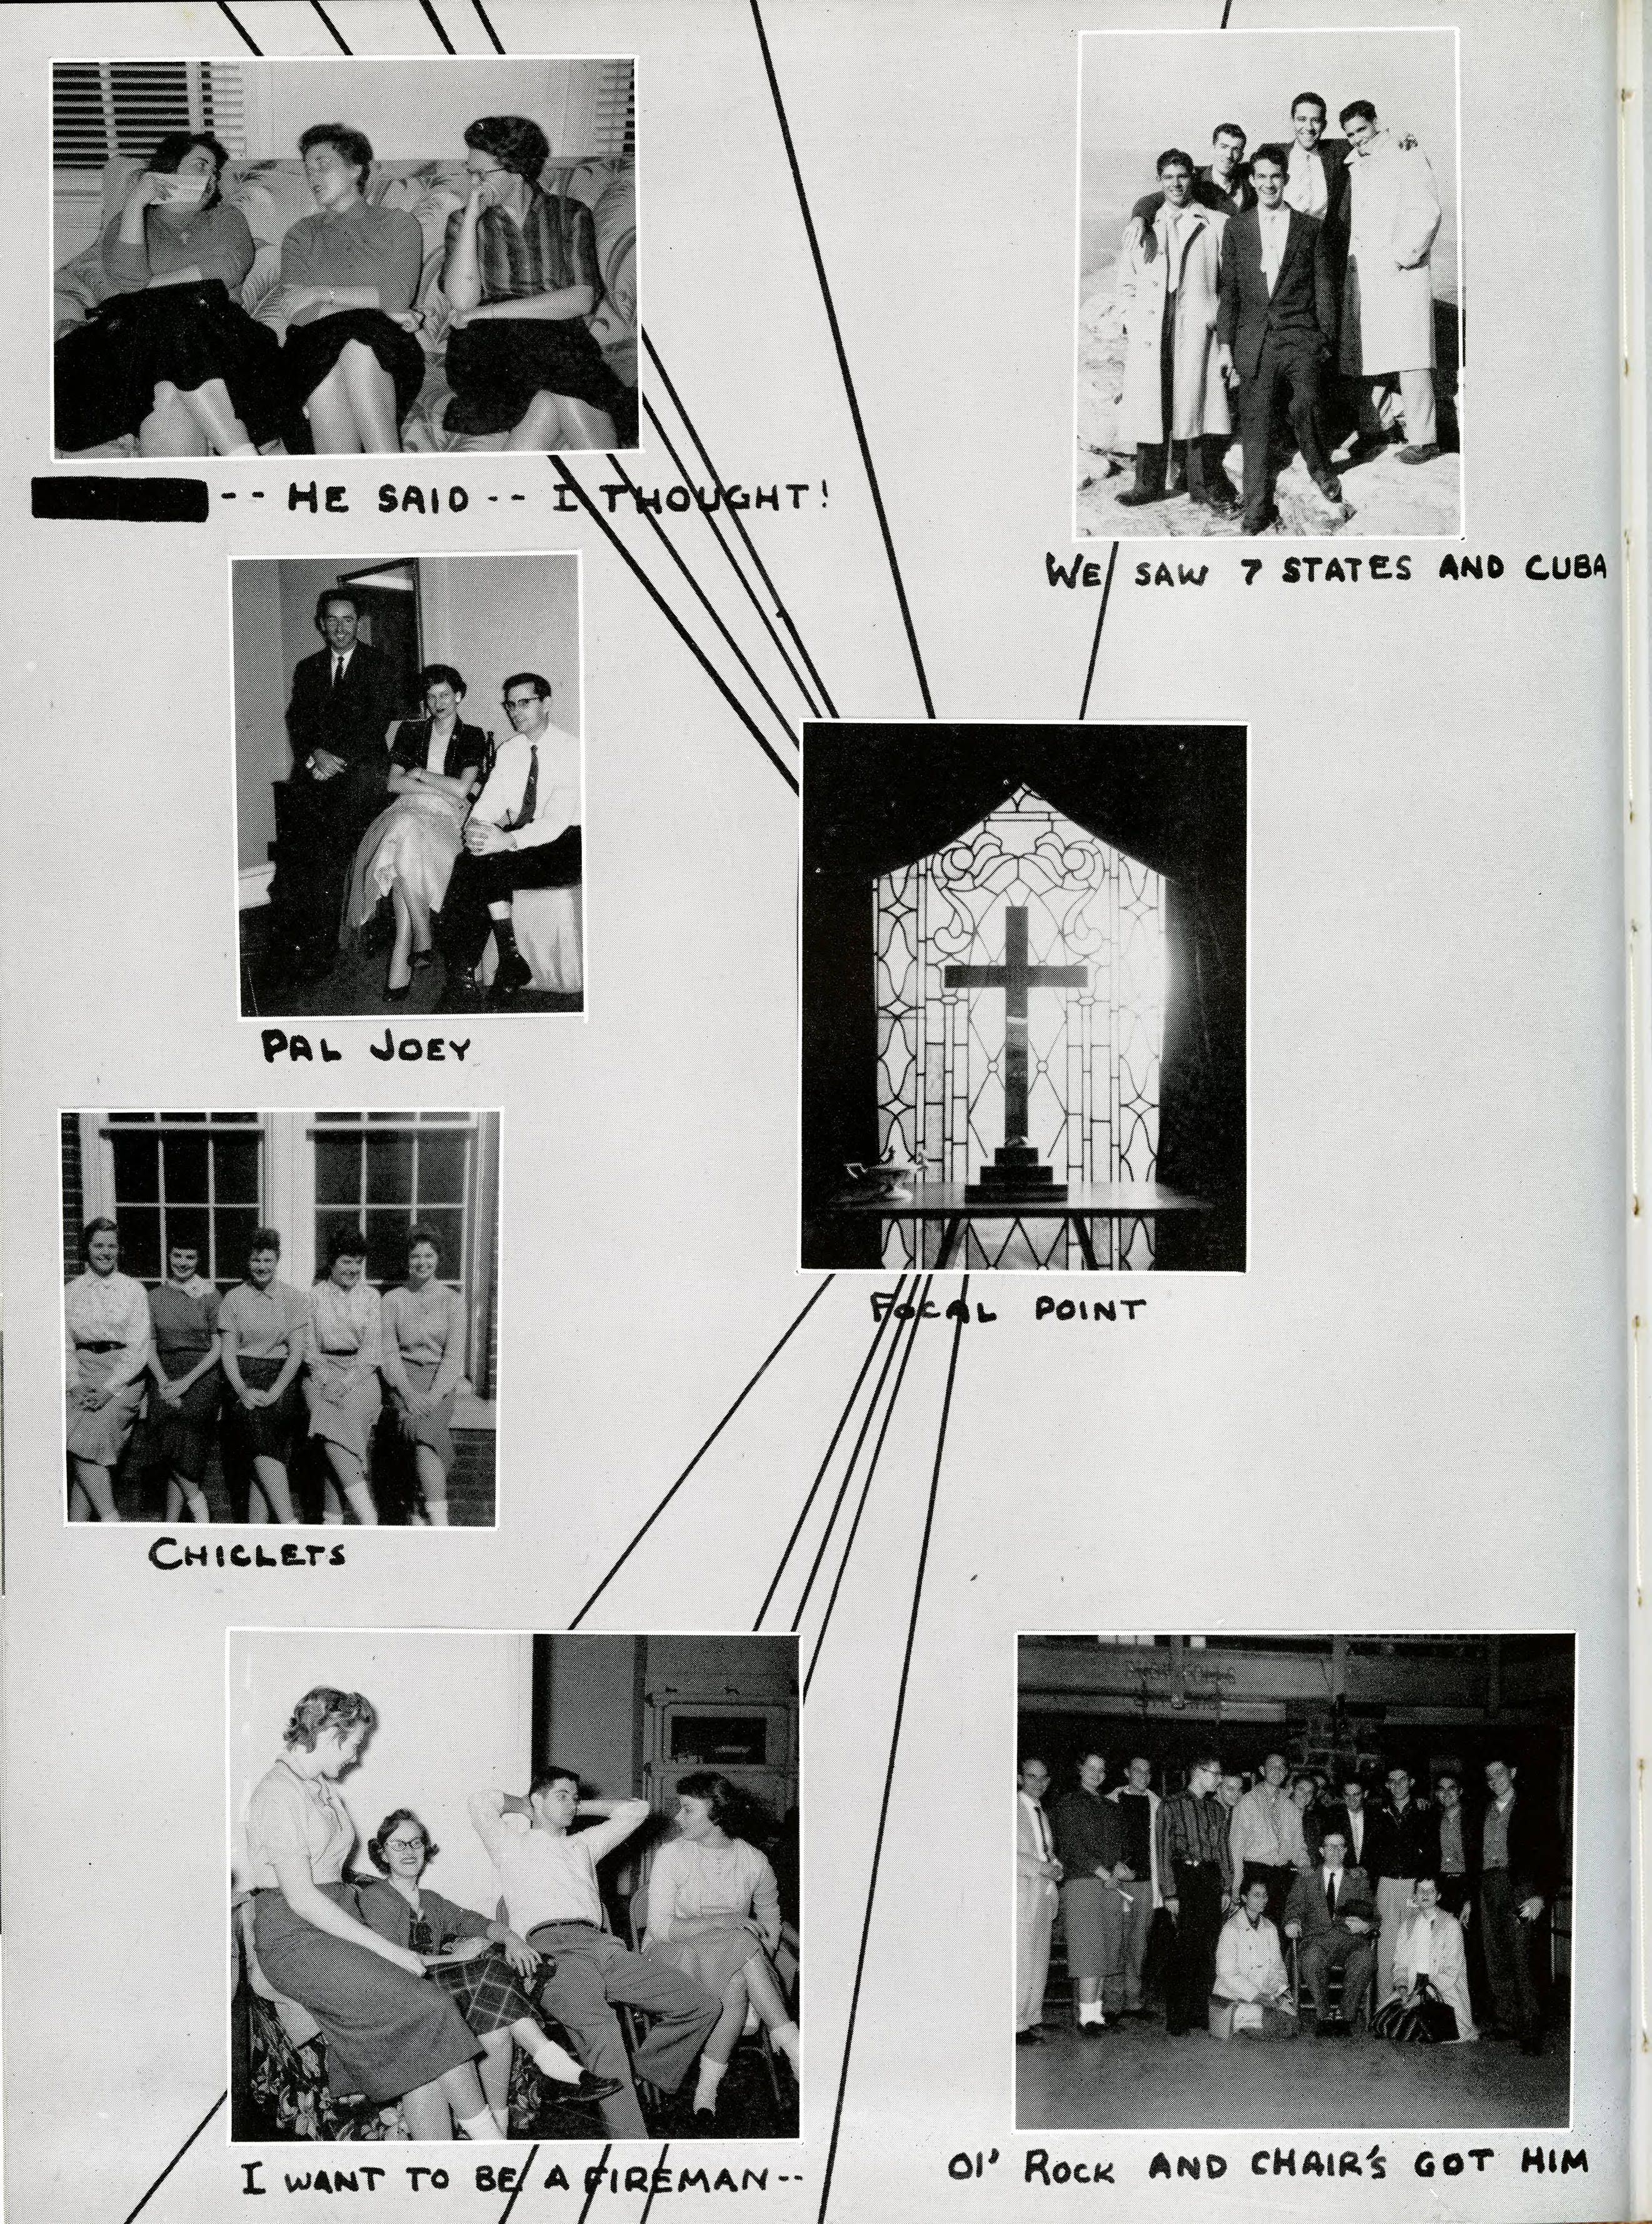 1958 Moccasin Yearbook, University of Chattanooga, UTC. See more old yearbooks at http://digital-collections.library.utc.edu/cdm/landingpage/collection/p16877coll3